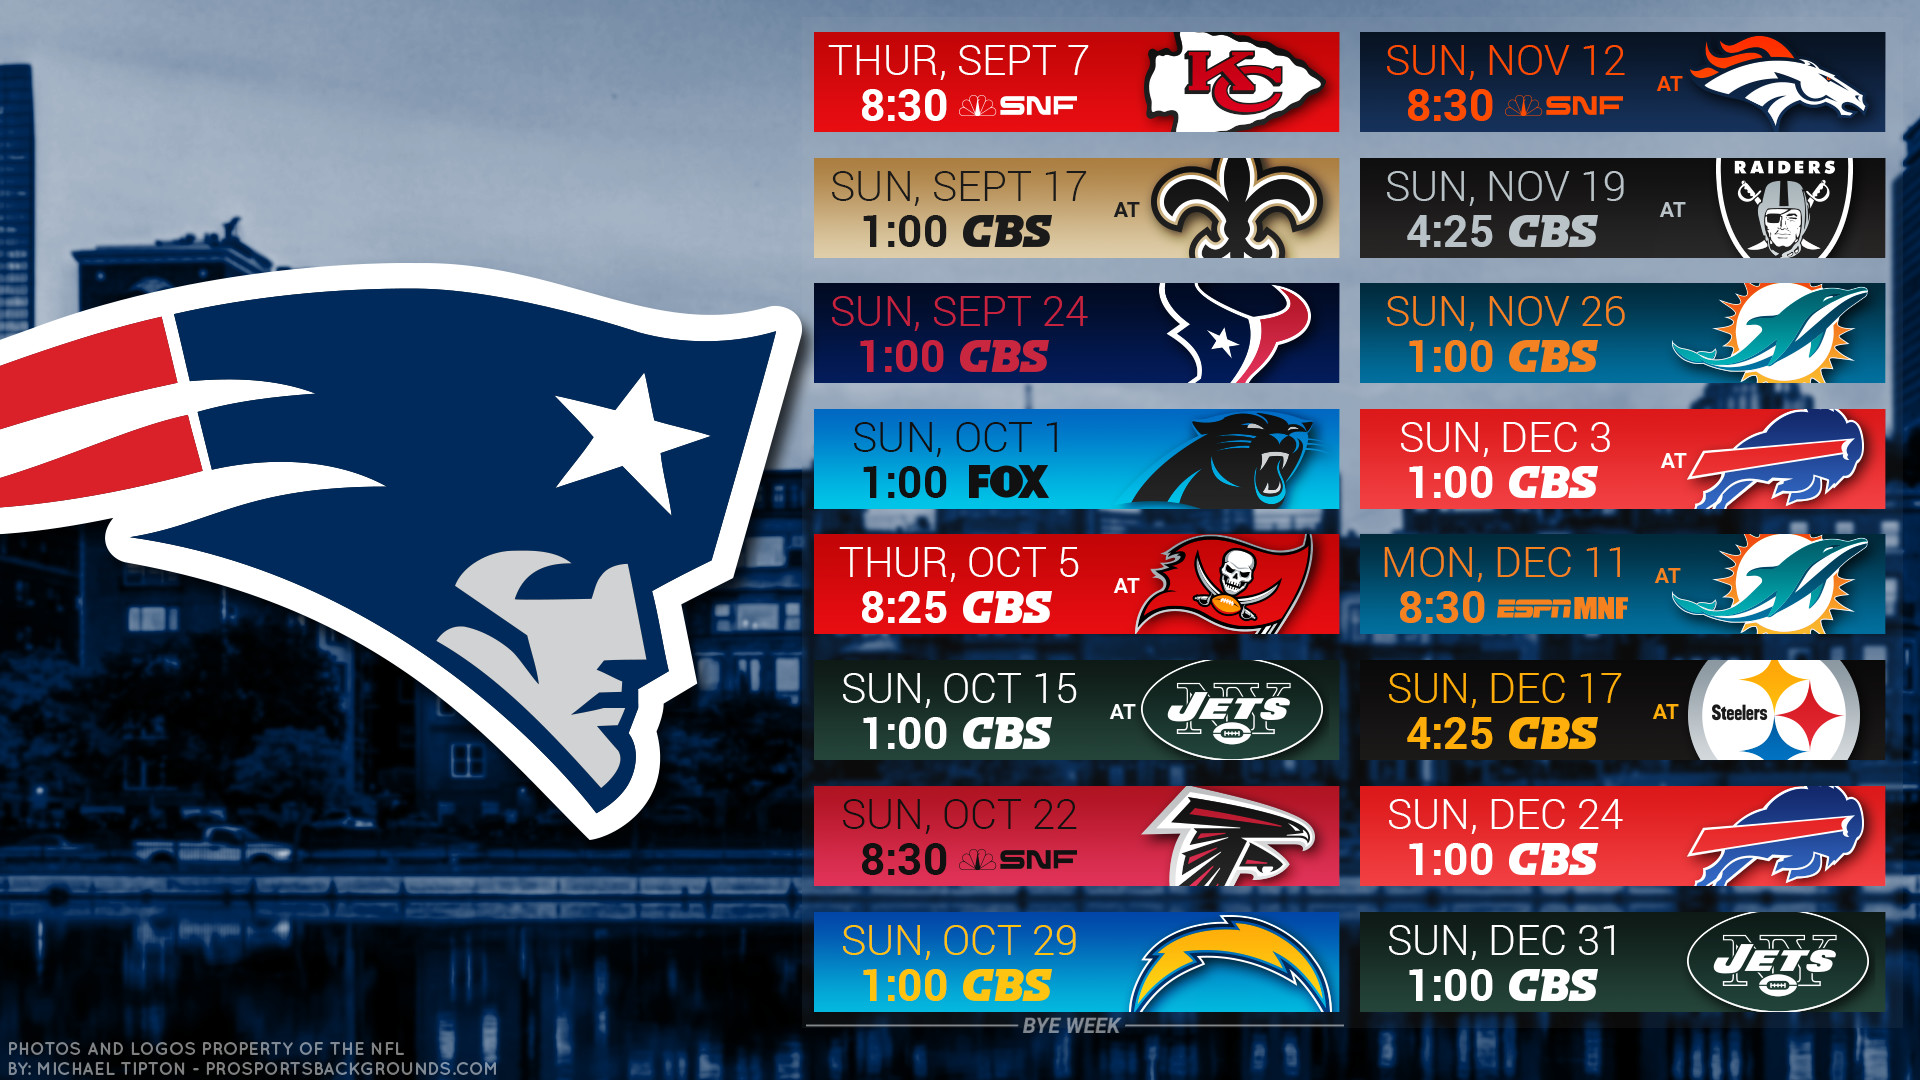 1920x1080 New England Patriots 2017 schedule city football logo wallpaper free pc  desktop computer ...